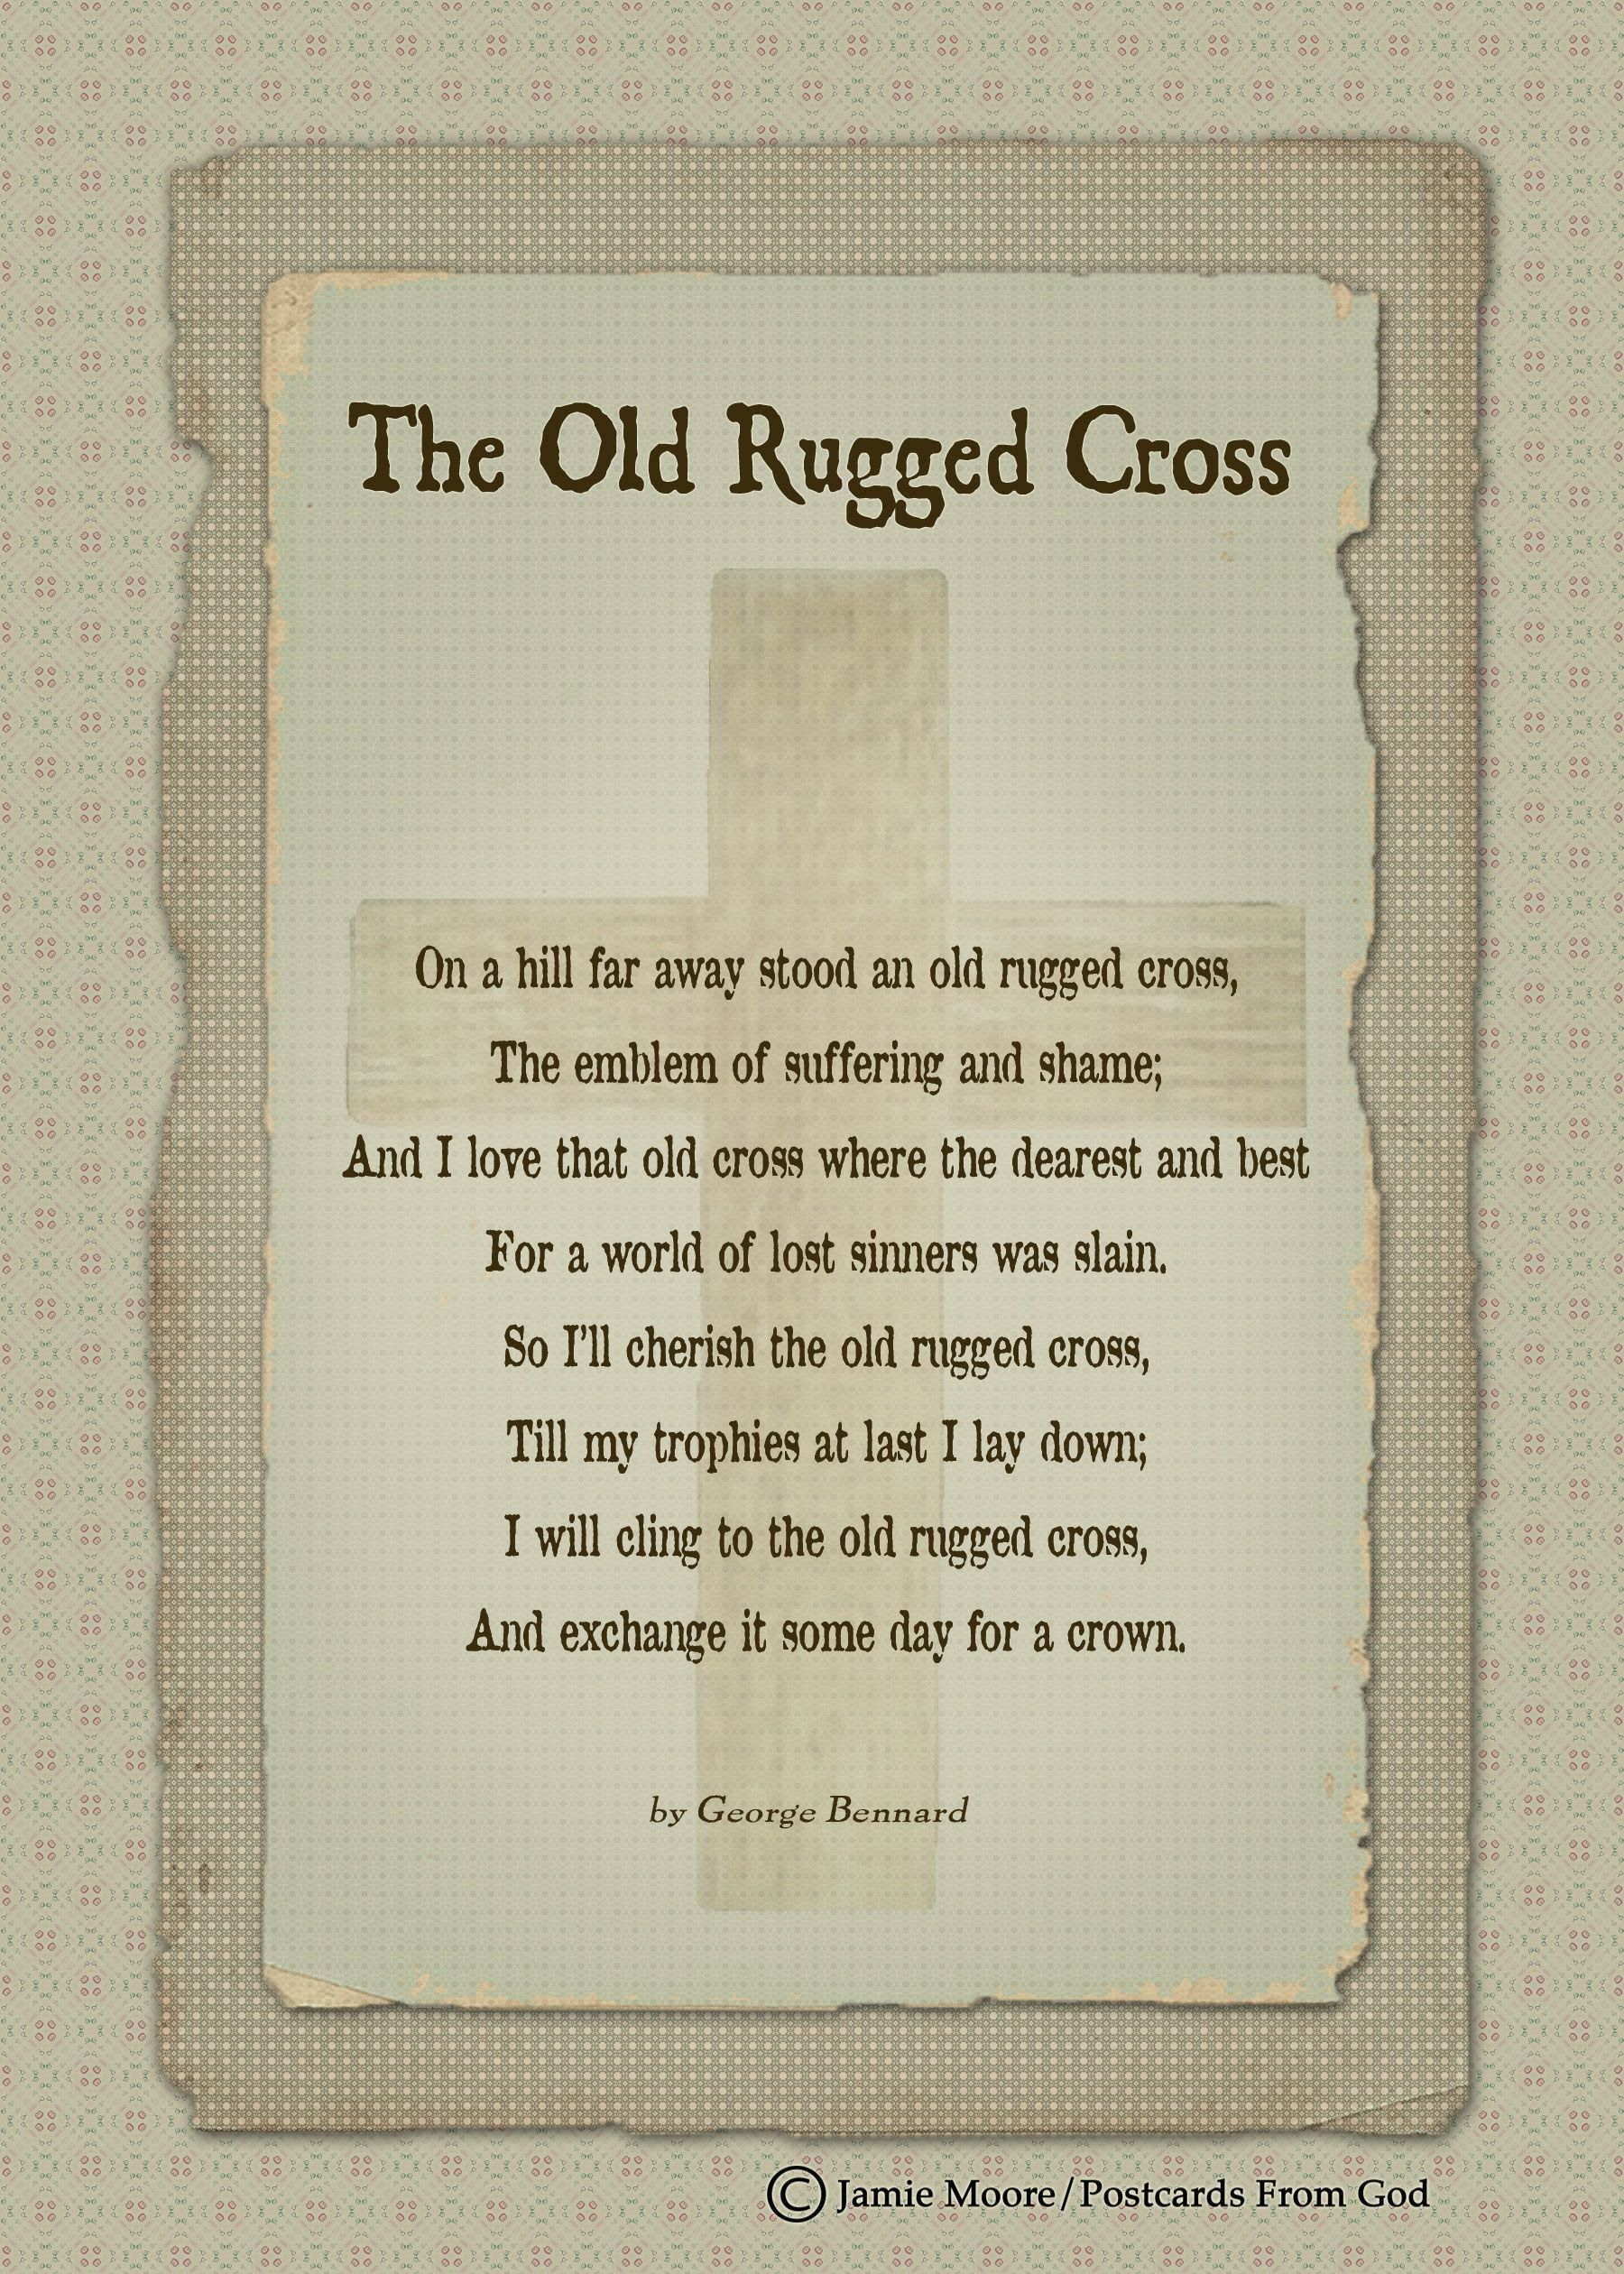 I Will Cling To The Old Rugged Cross And Exchange It Some Day For A